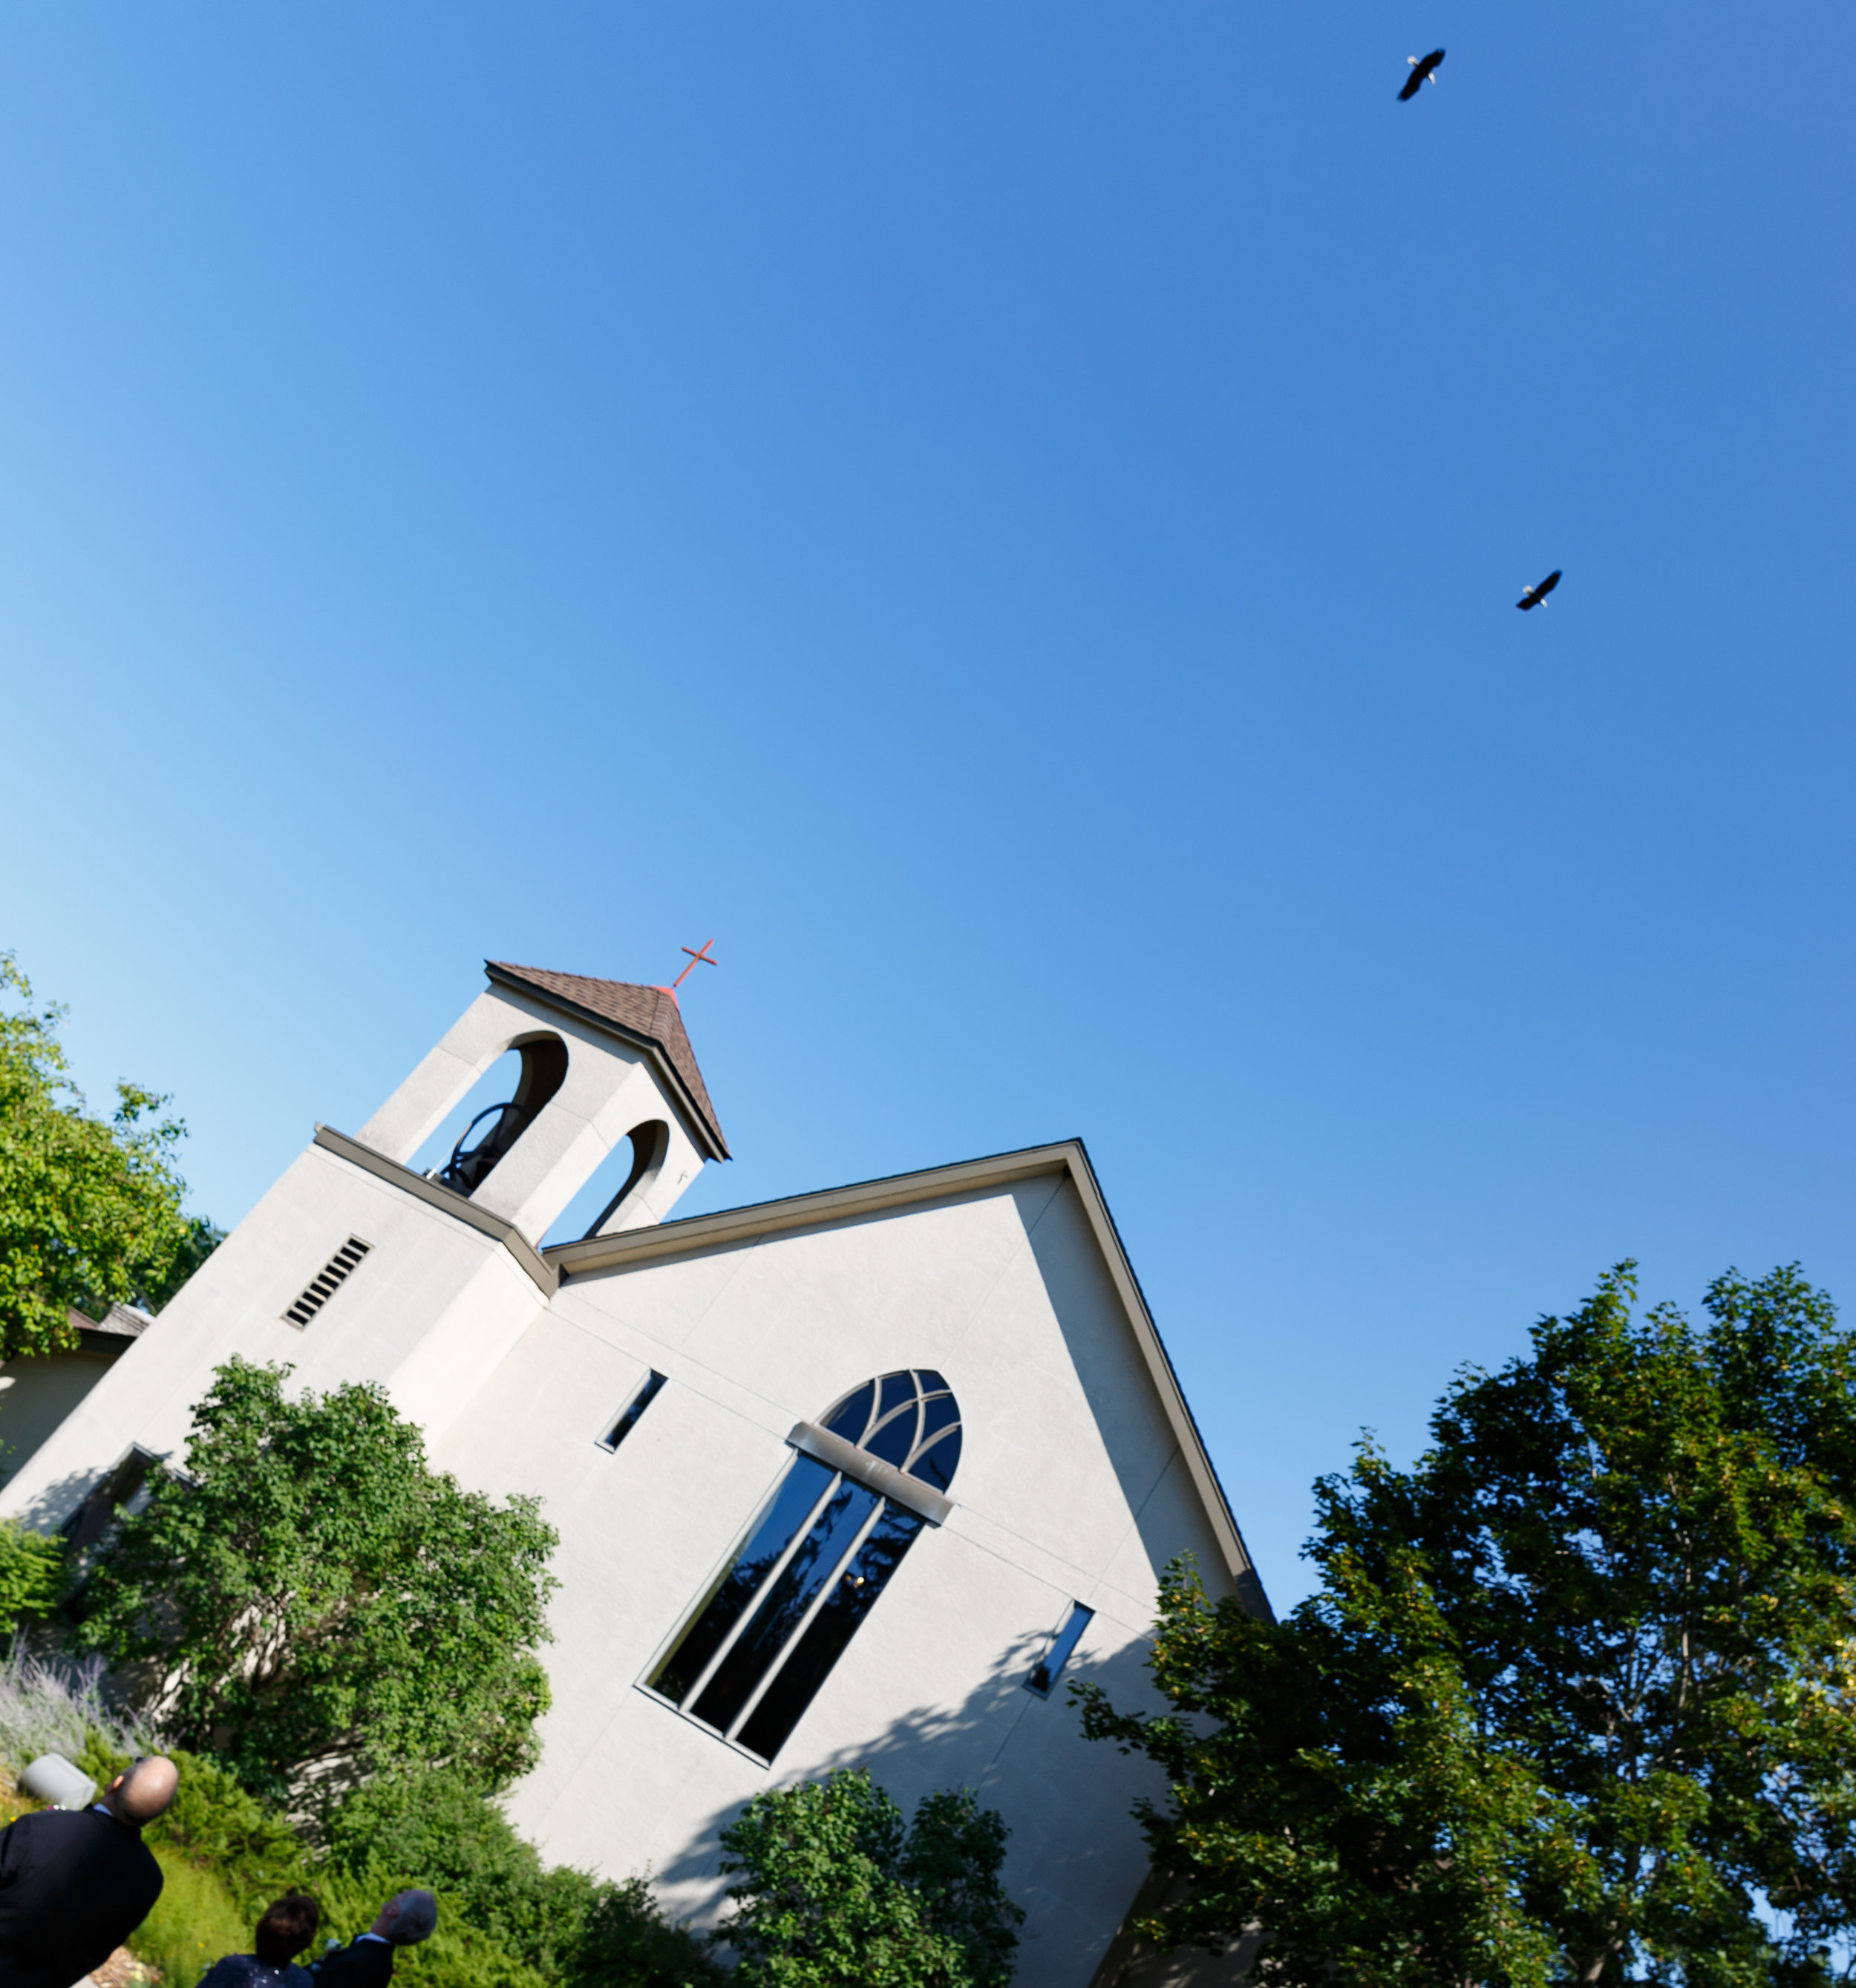 Was this PLANNED? Two bald eagles, flying over the church on an Air Force Wedding Day!